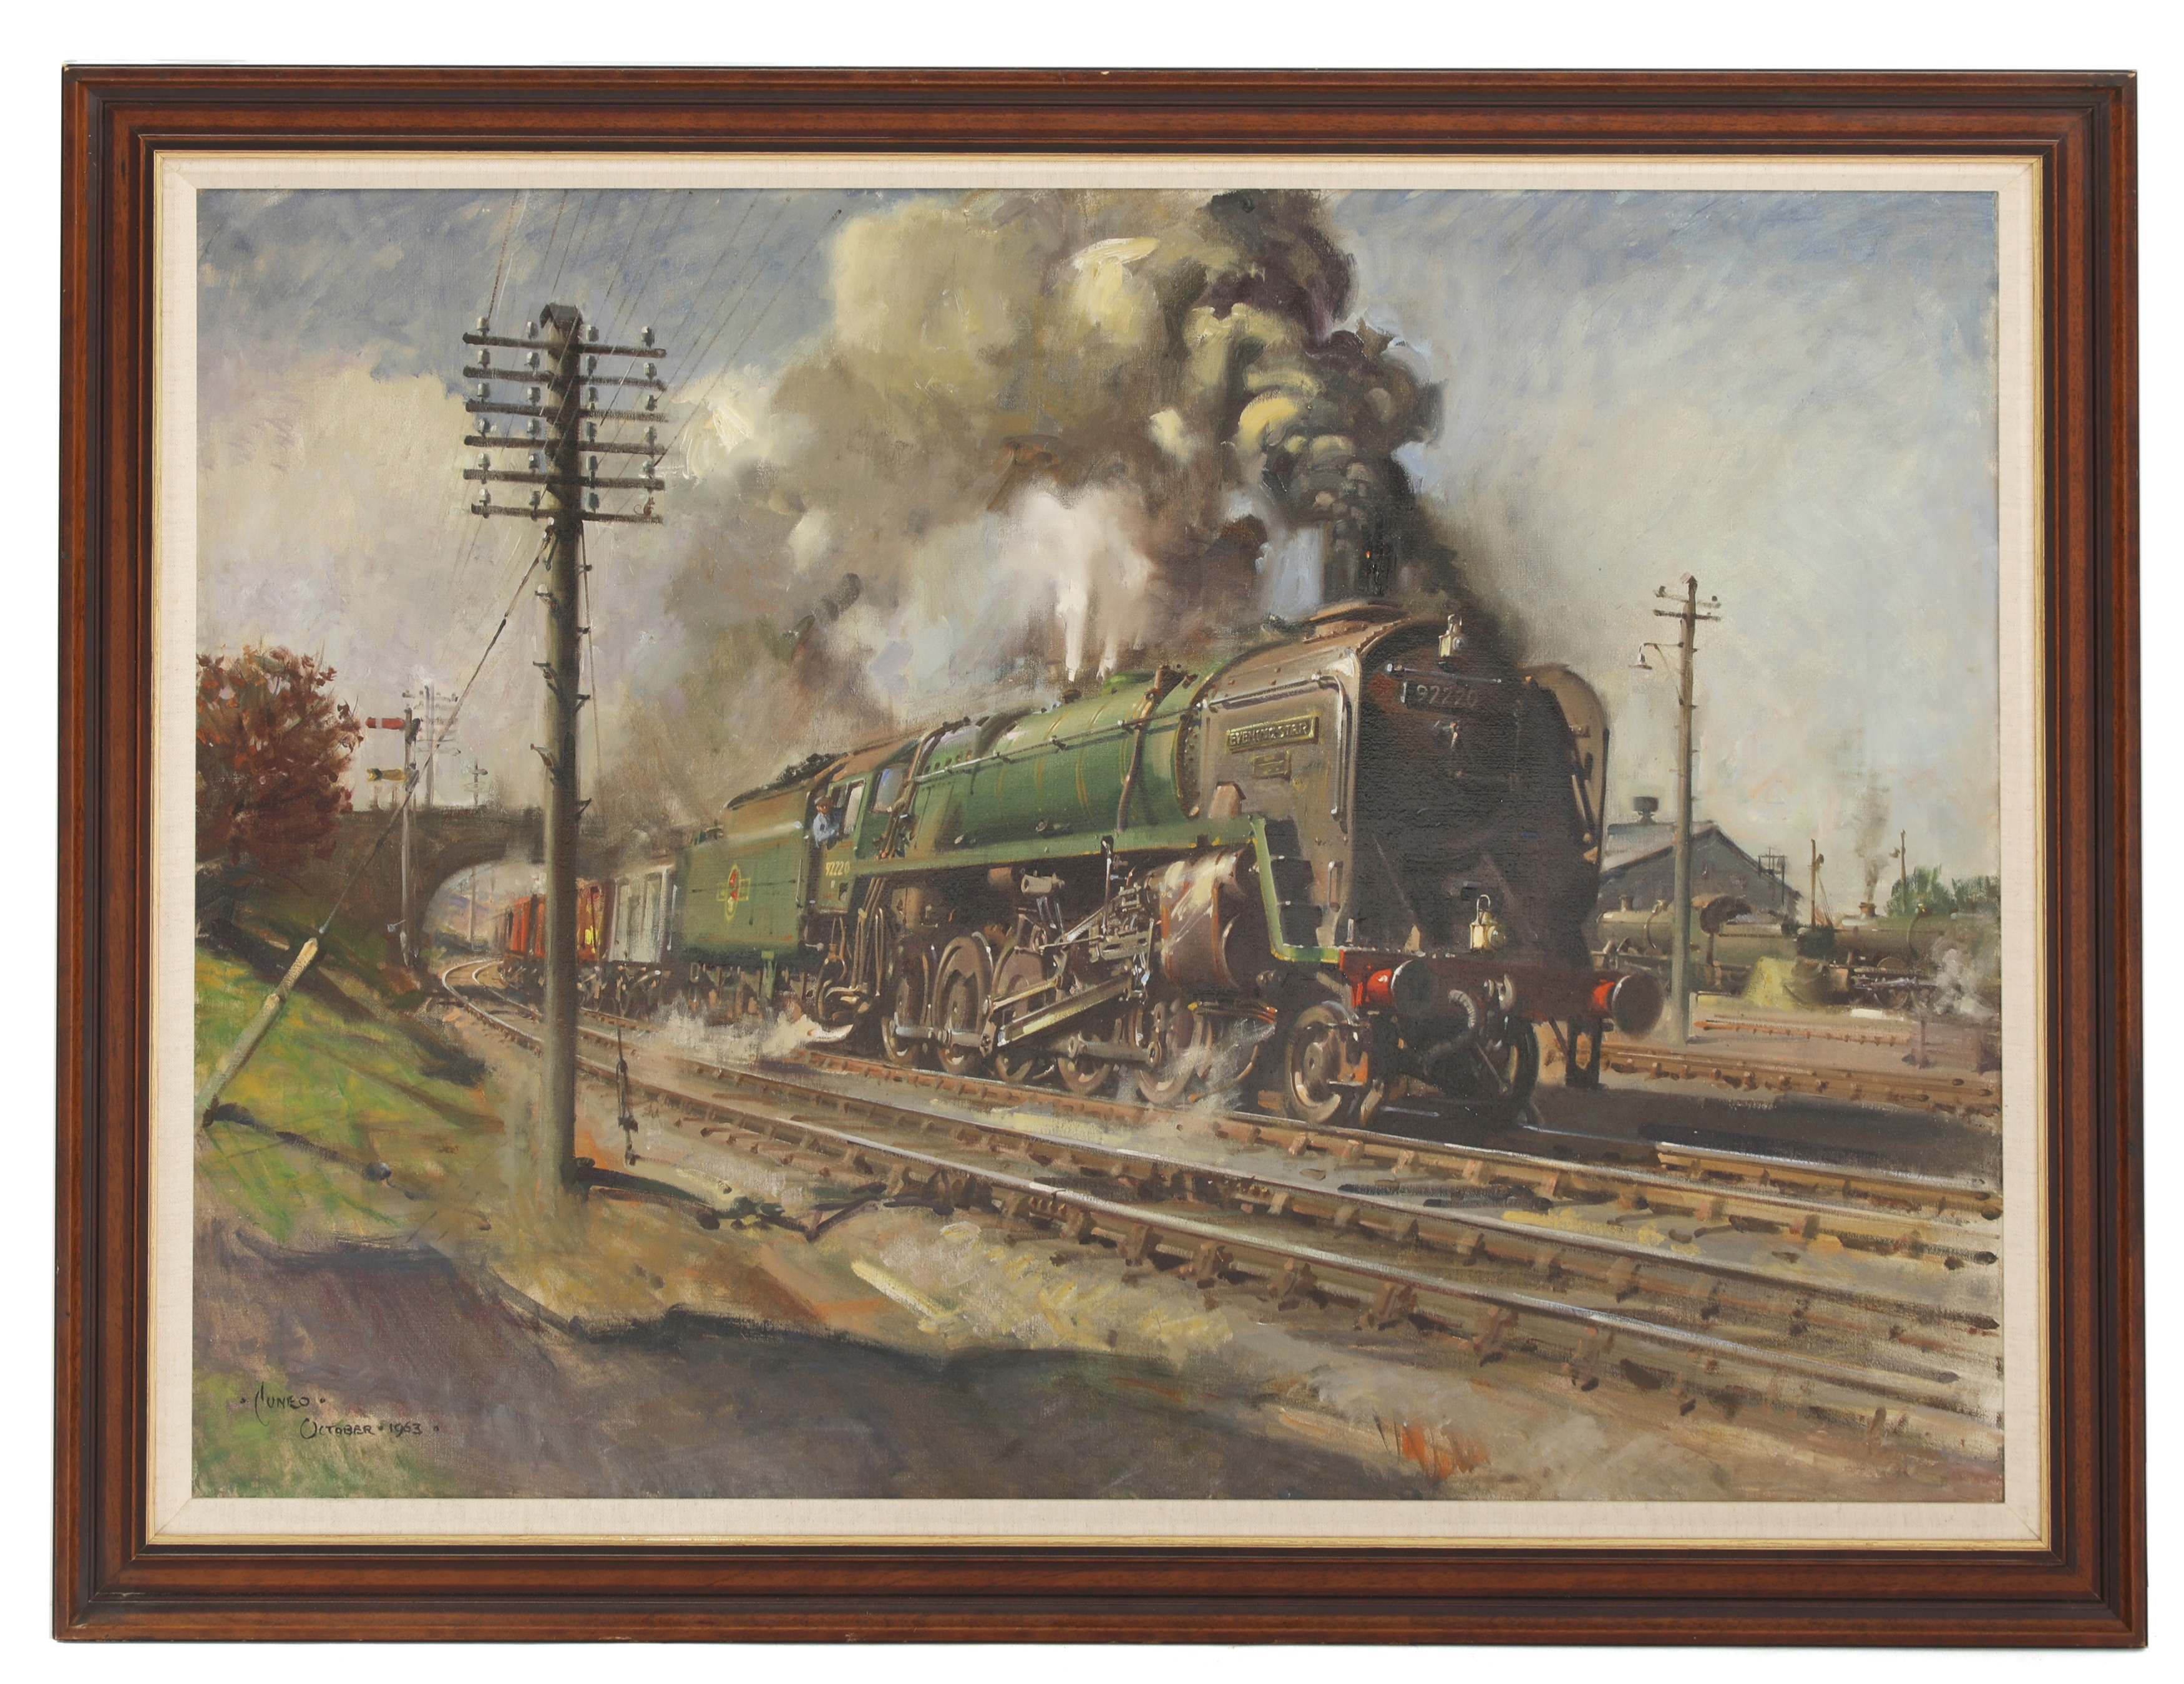 Evening Star - Terence Cuneo